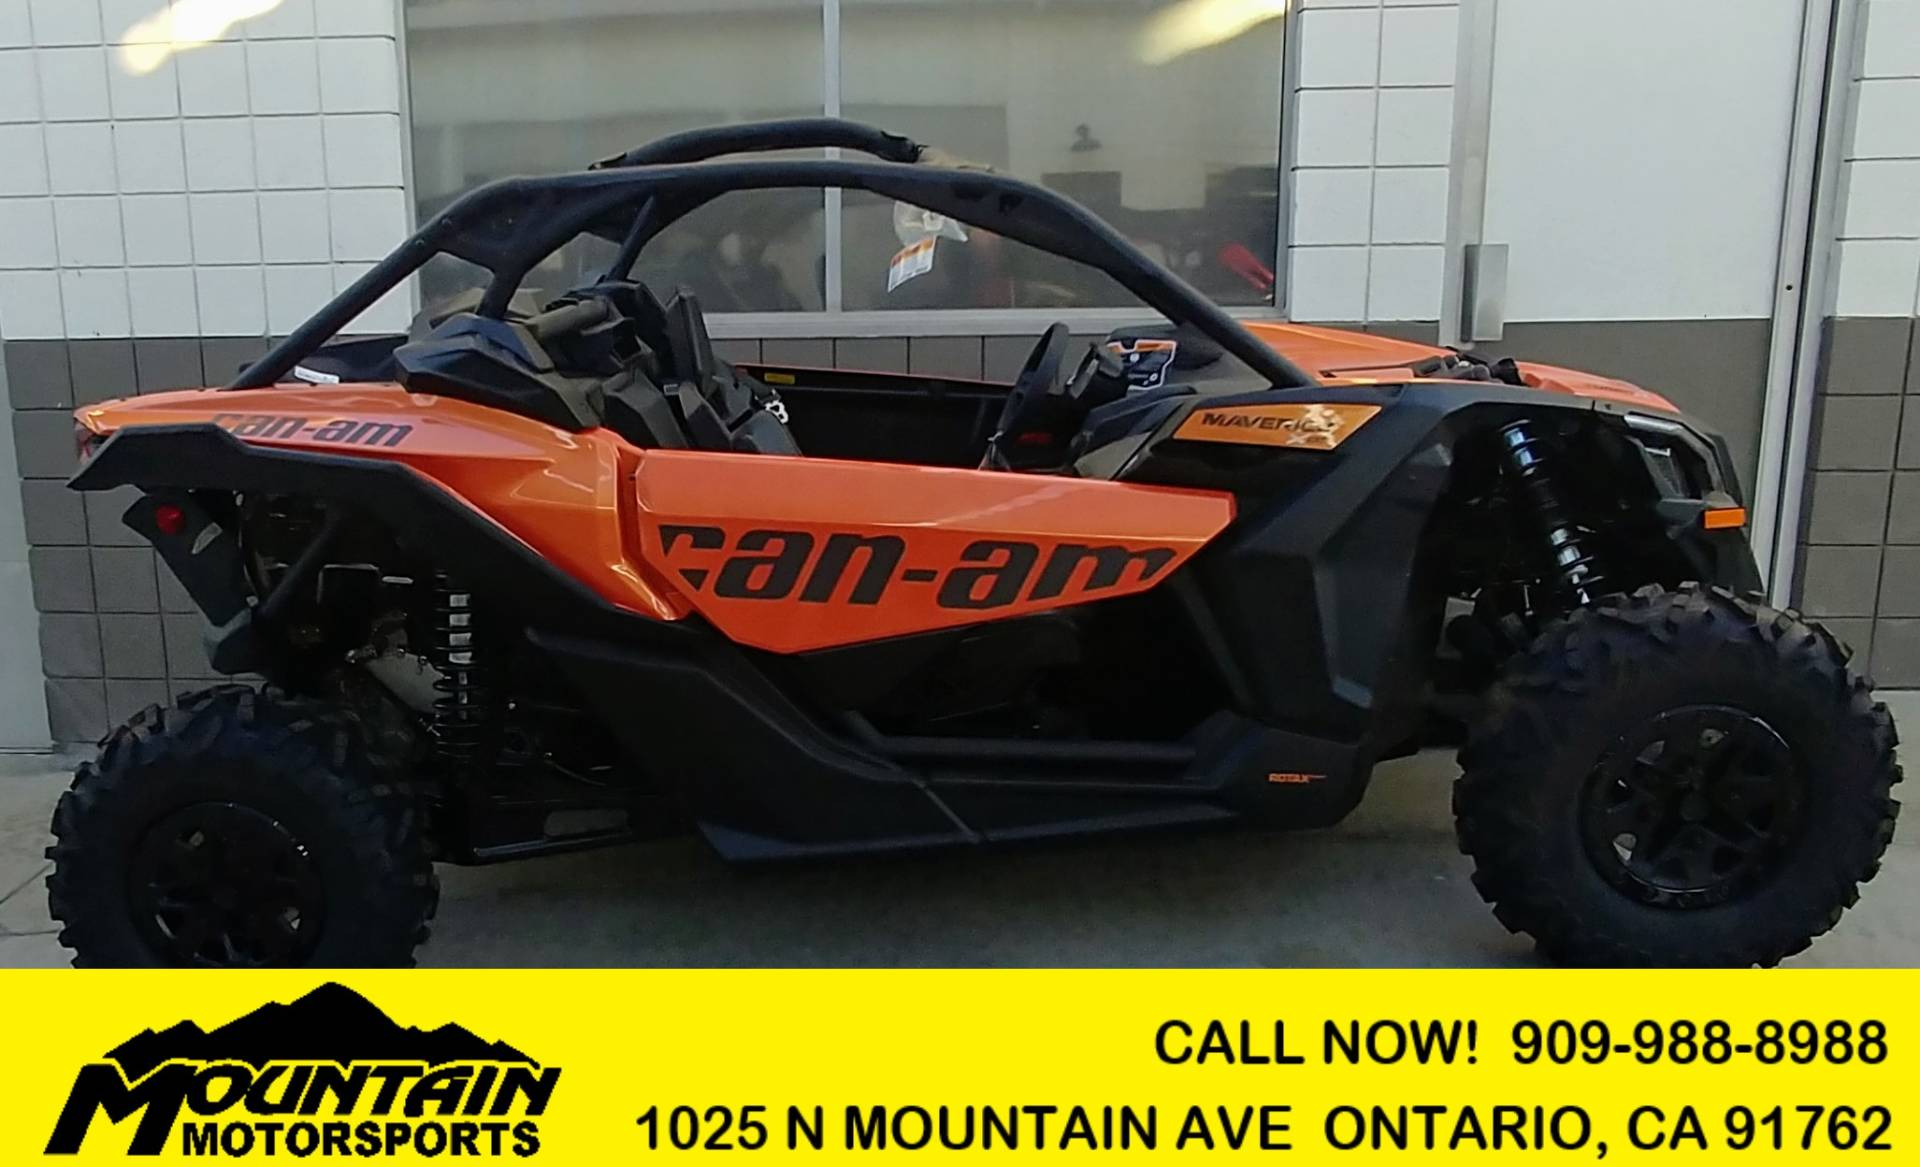 2019 Can-Am Maverick X3 X ds Turbo R for sale 98660